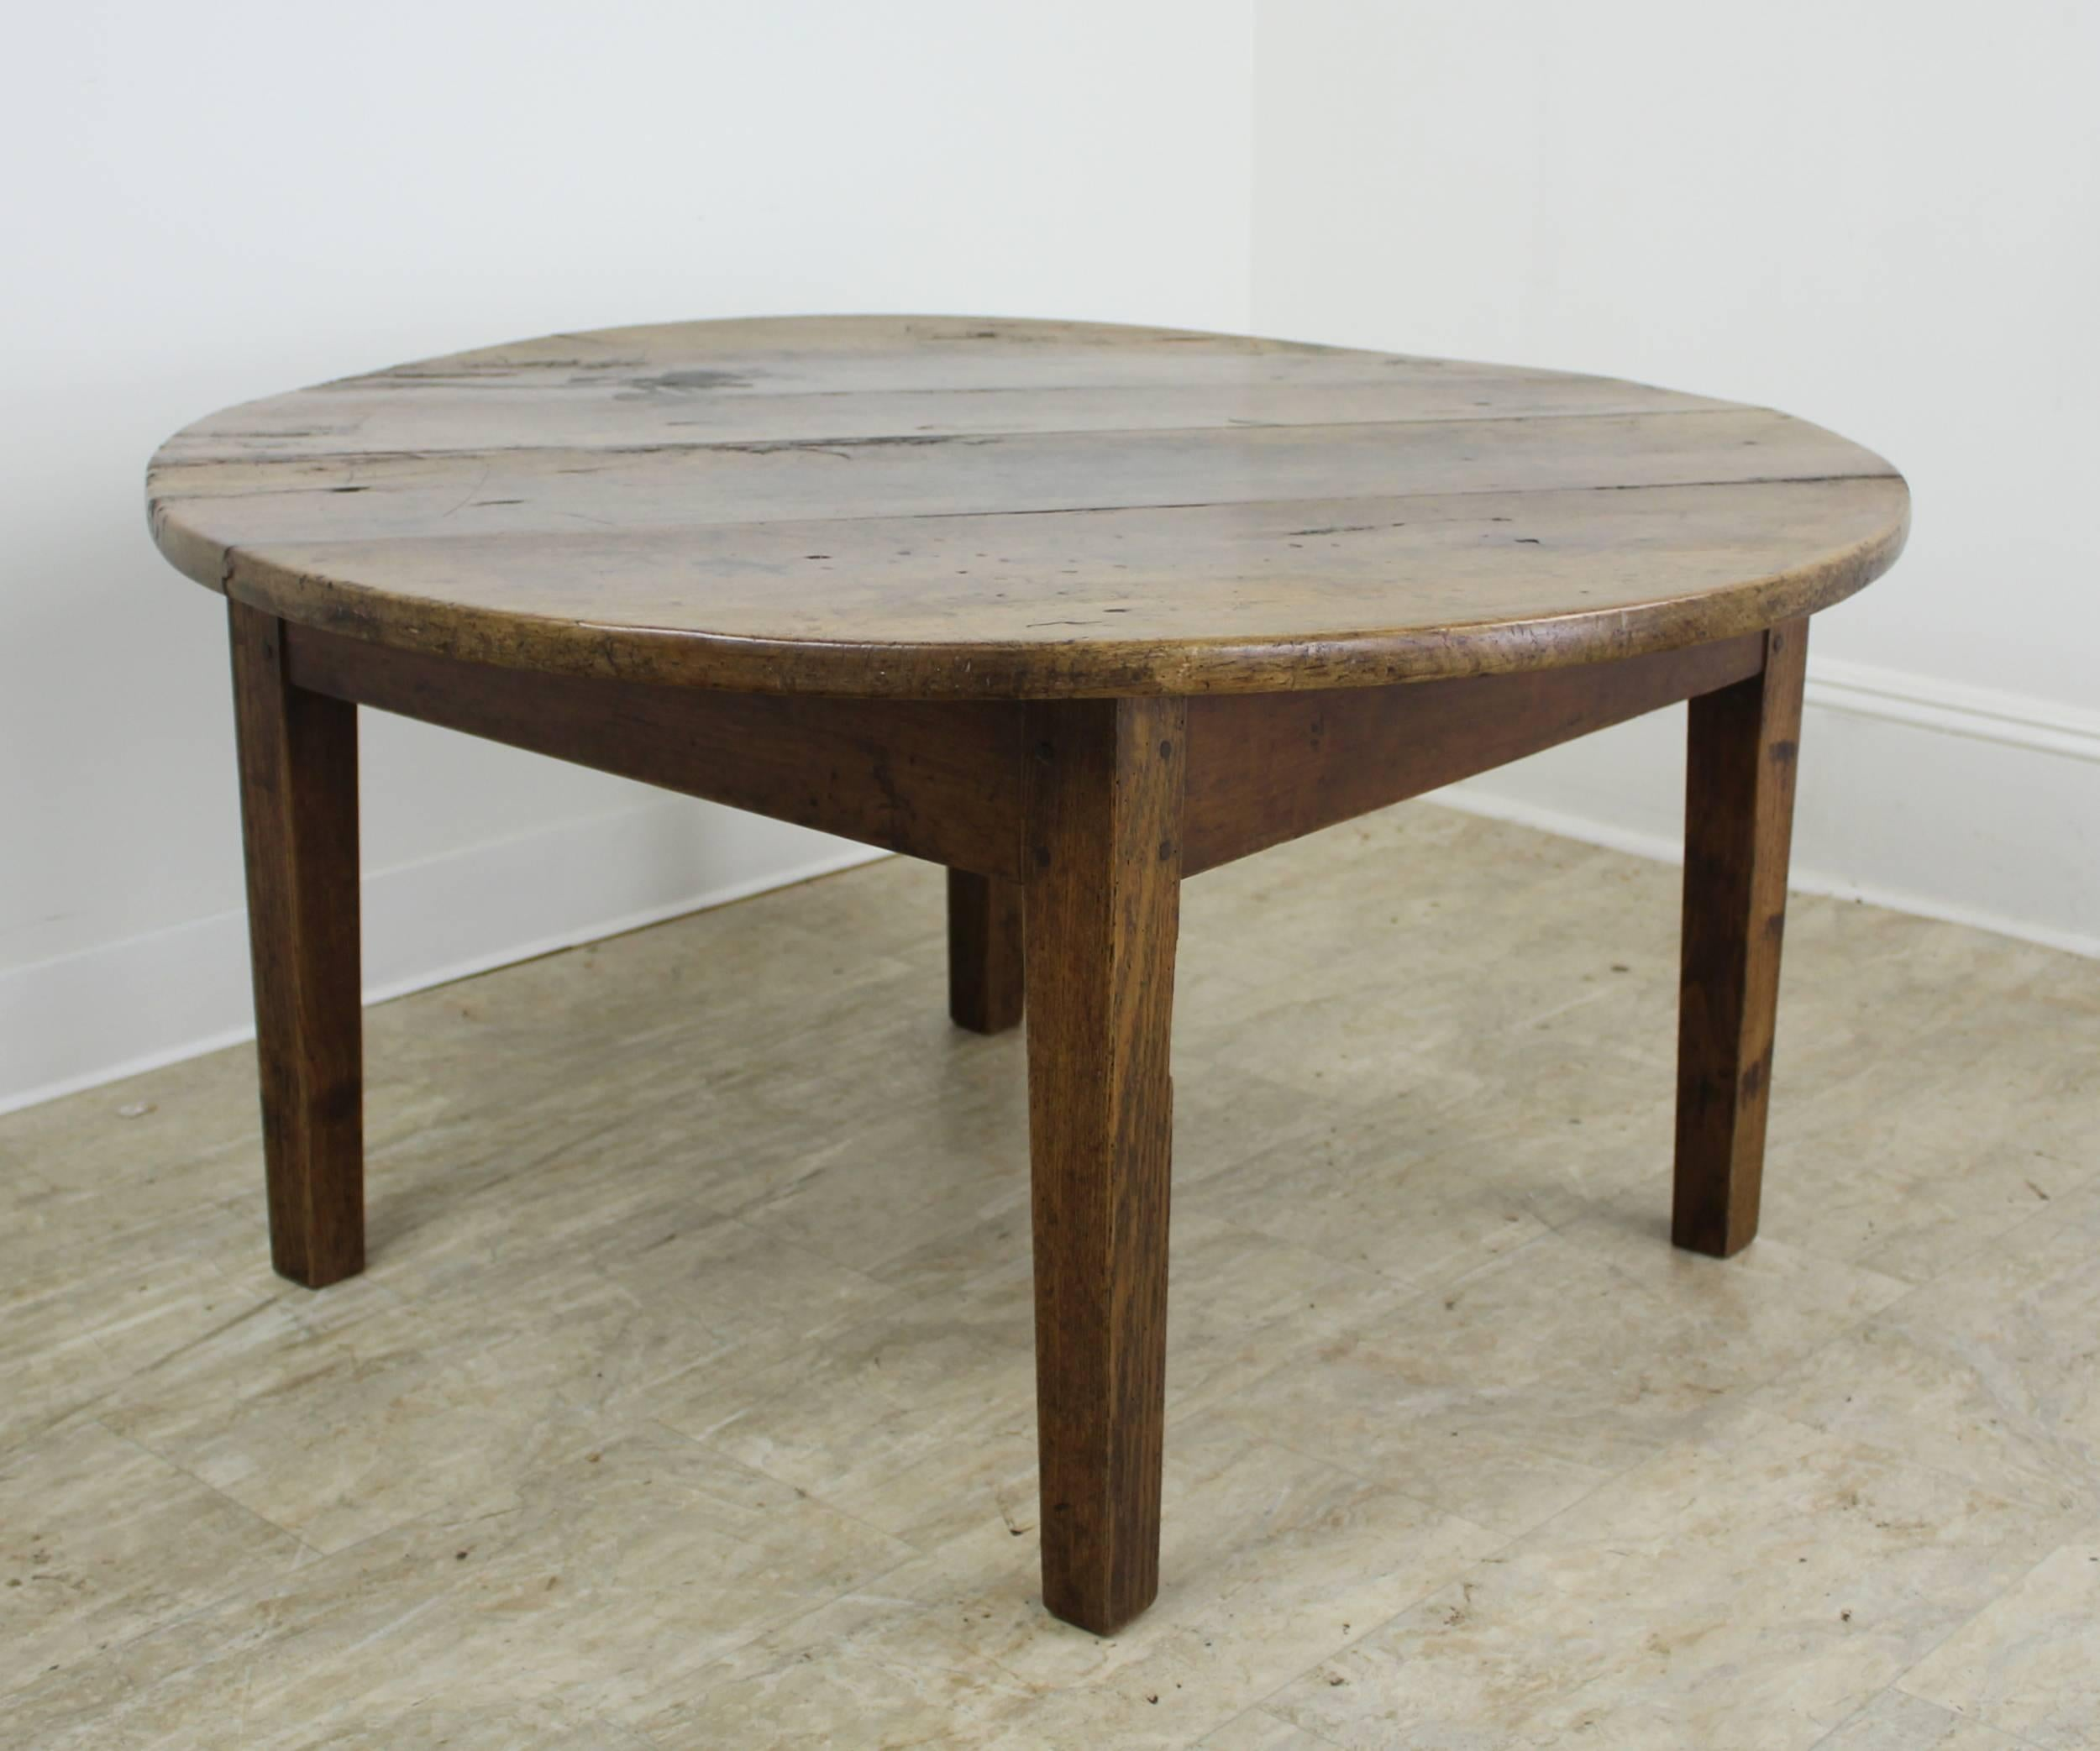 A Charming Round Cherry Coffee Table With Chunky Legs And Top. The Top Has  Some